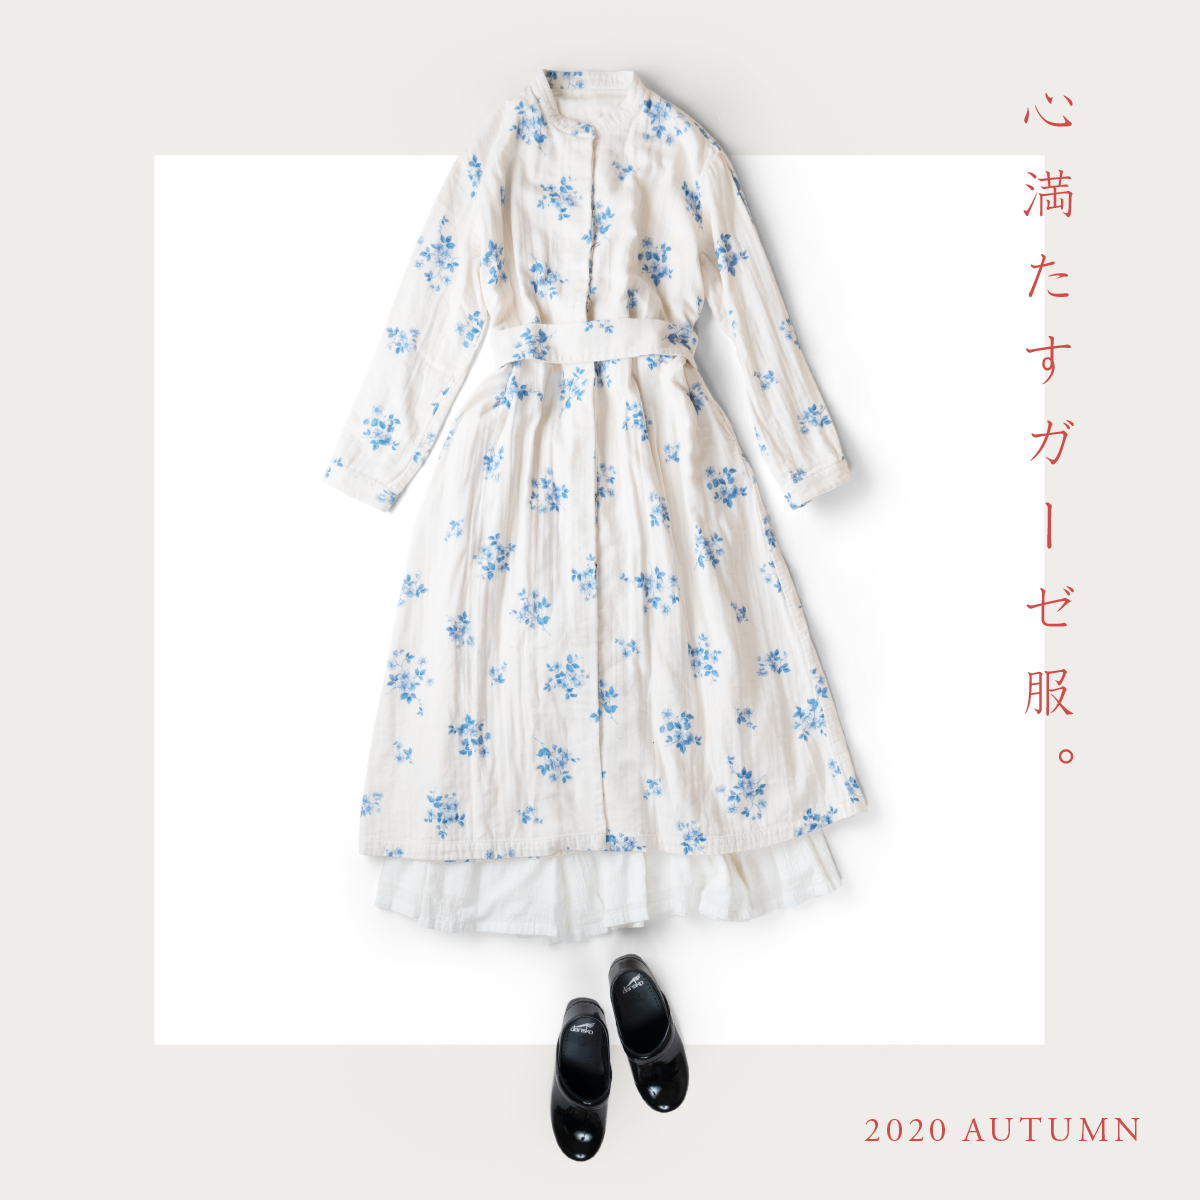 https://www.ao-daikanyama.com/information/upimg/202008_lookbook_ig_01.jpg